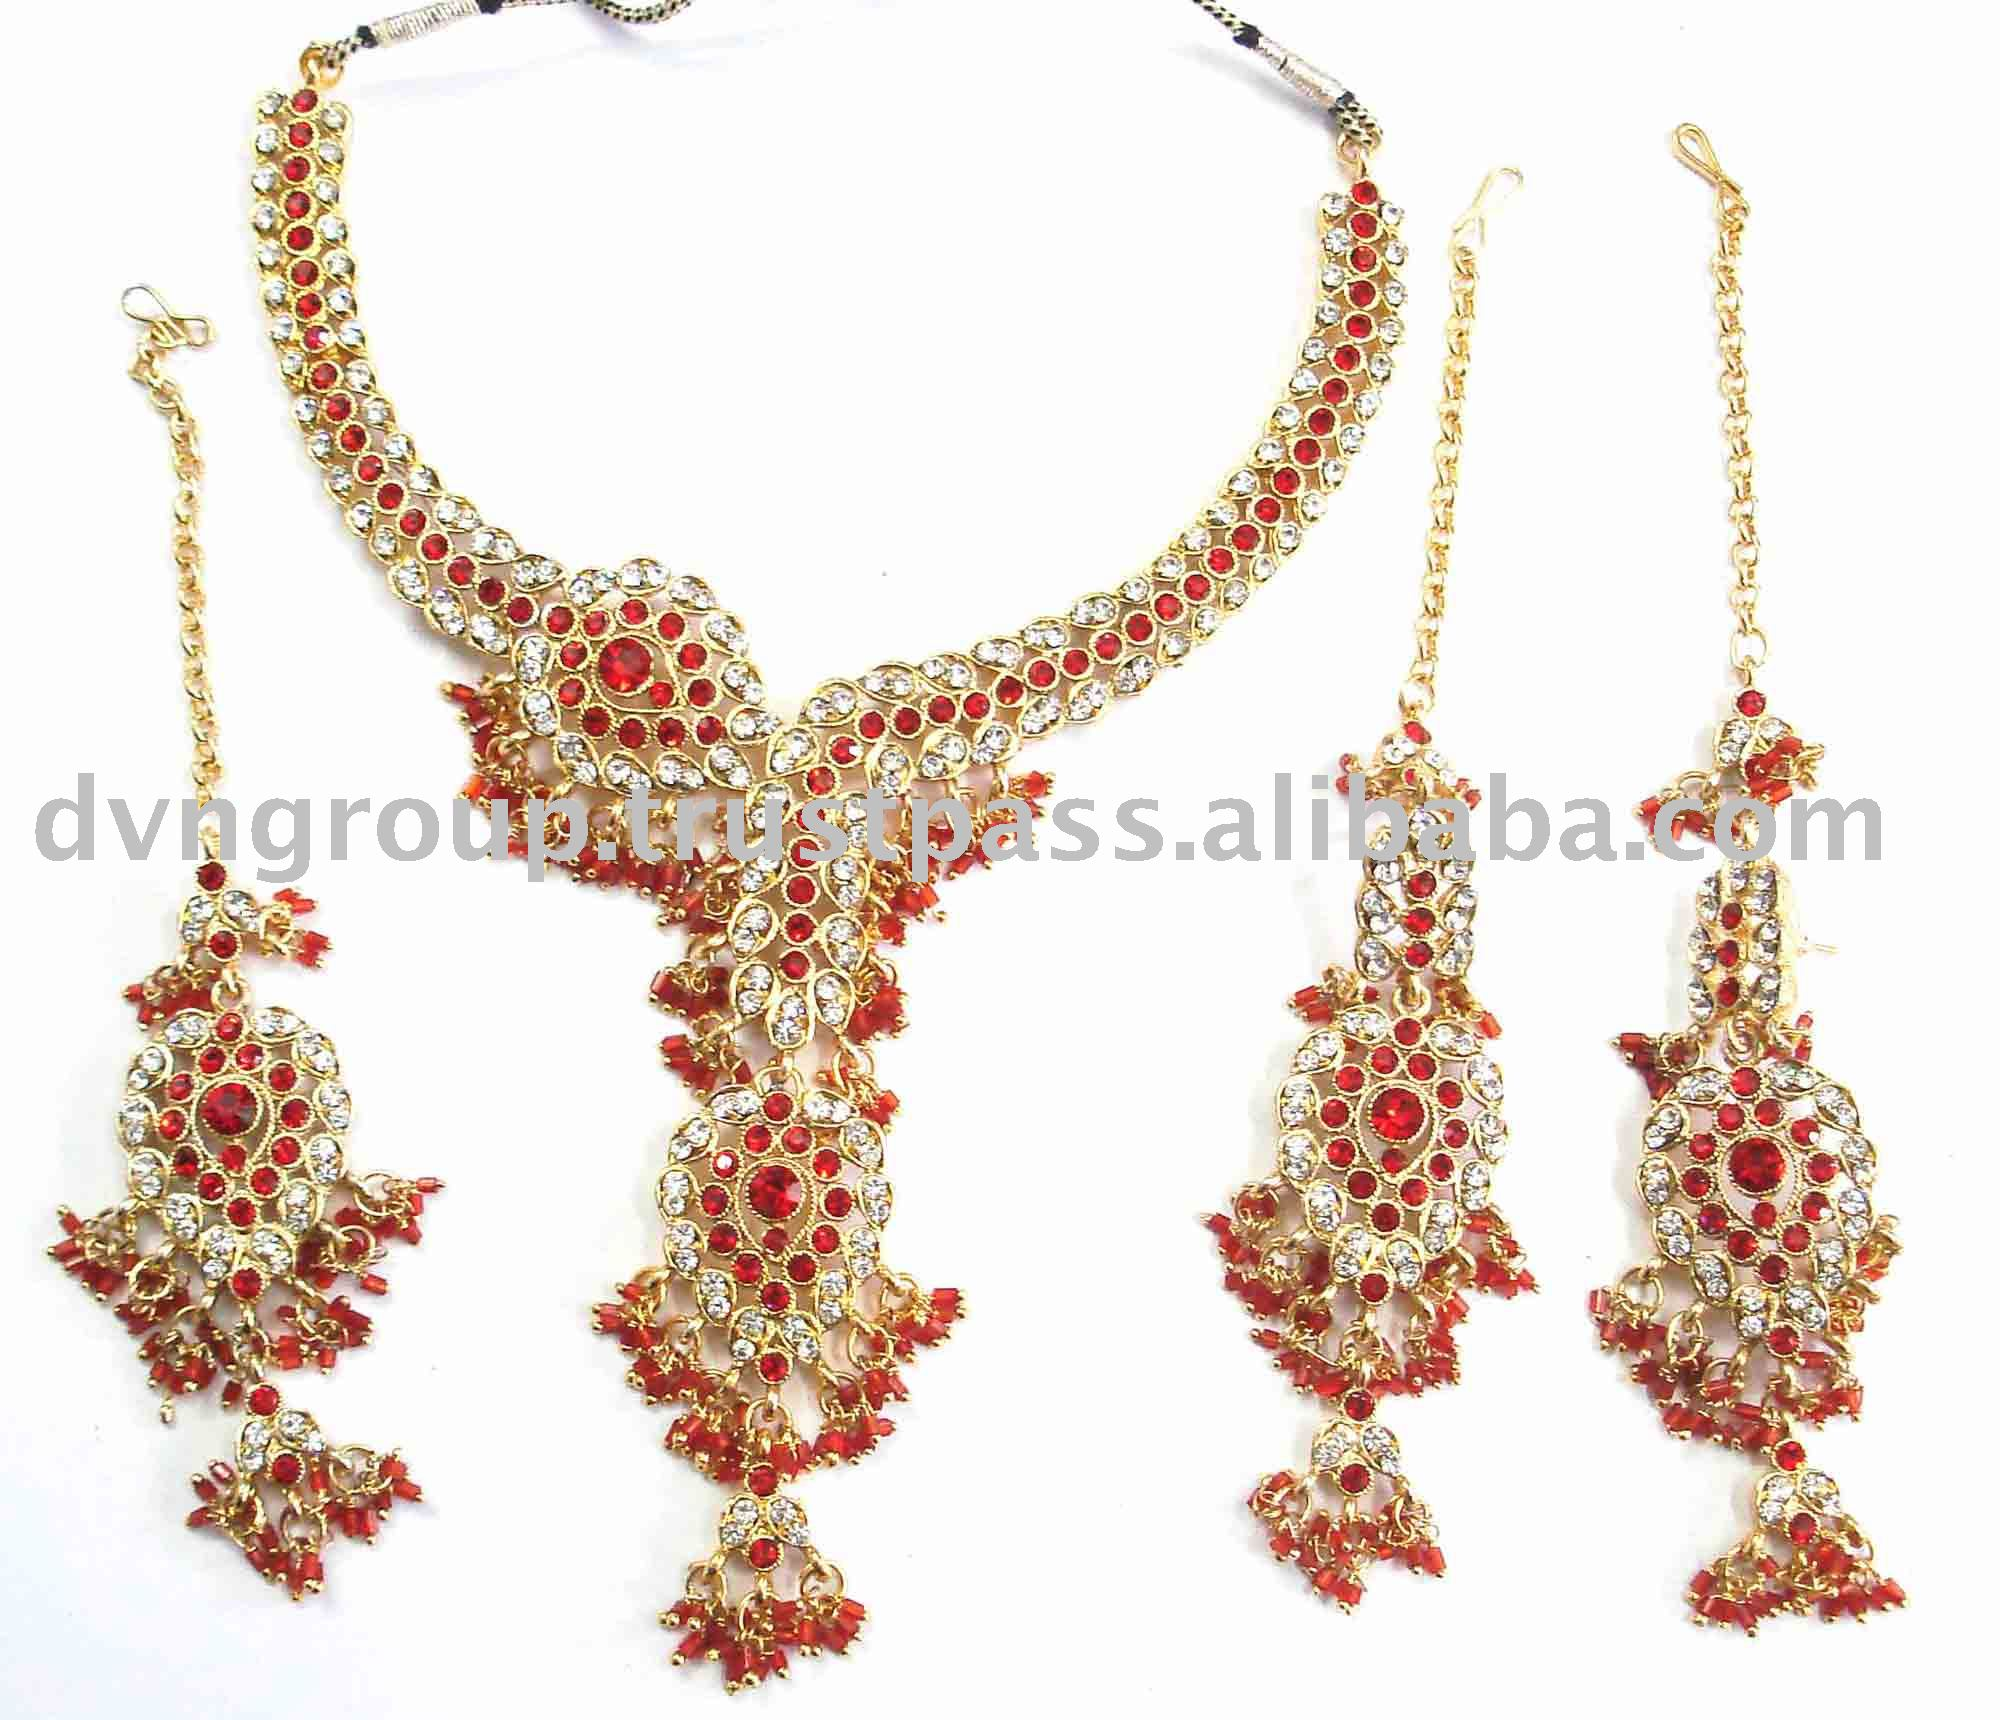 contemporary indian jewelry - buy costume jewelry,jewellery,alloy necklace  product on alibaba.com wvfihyc